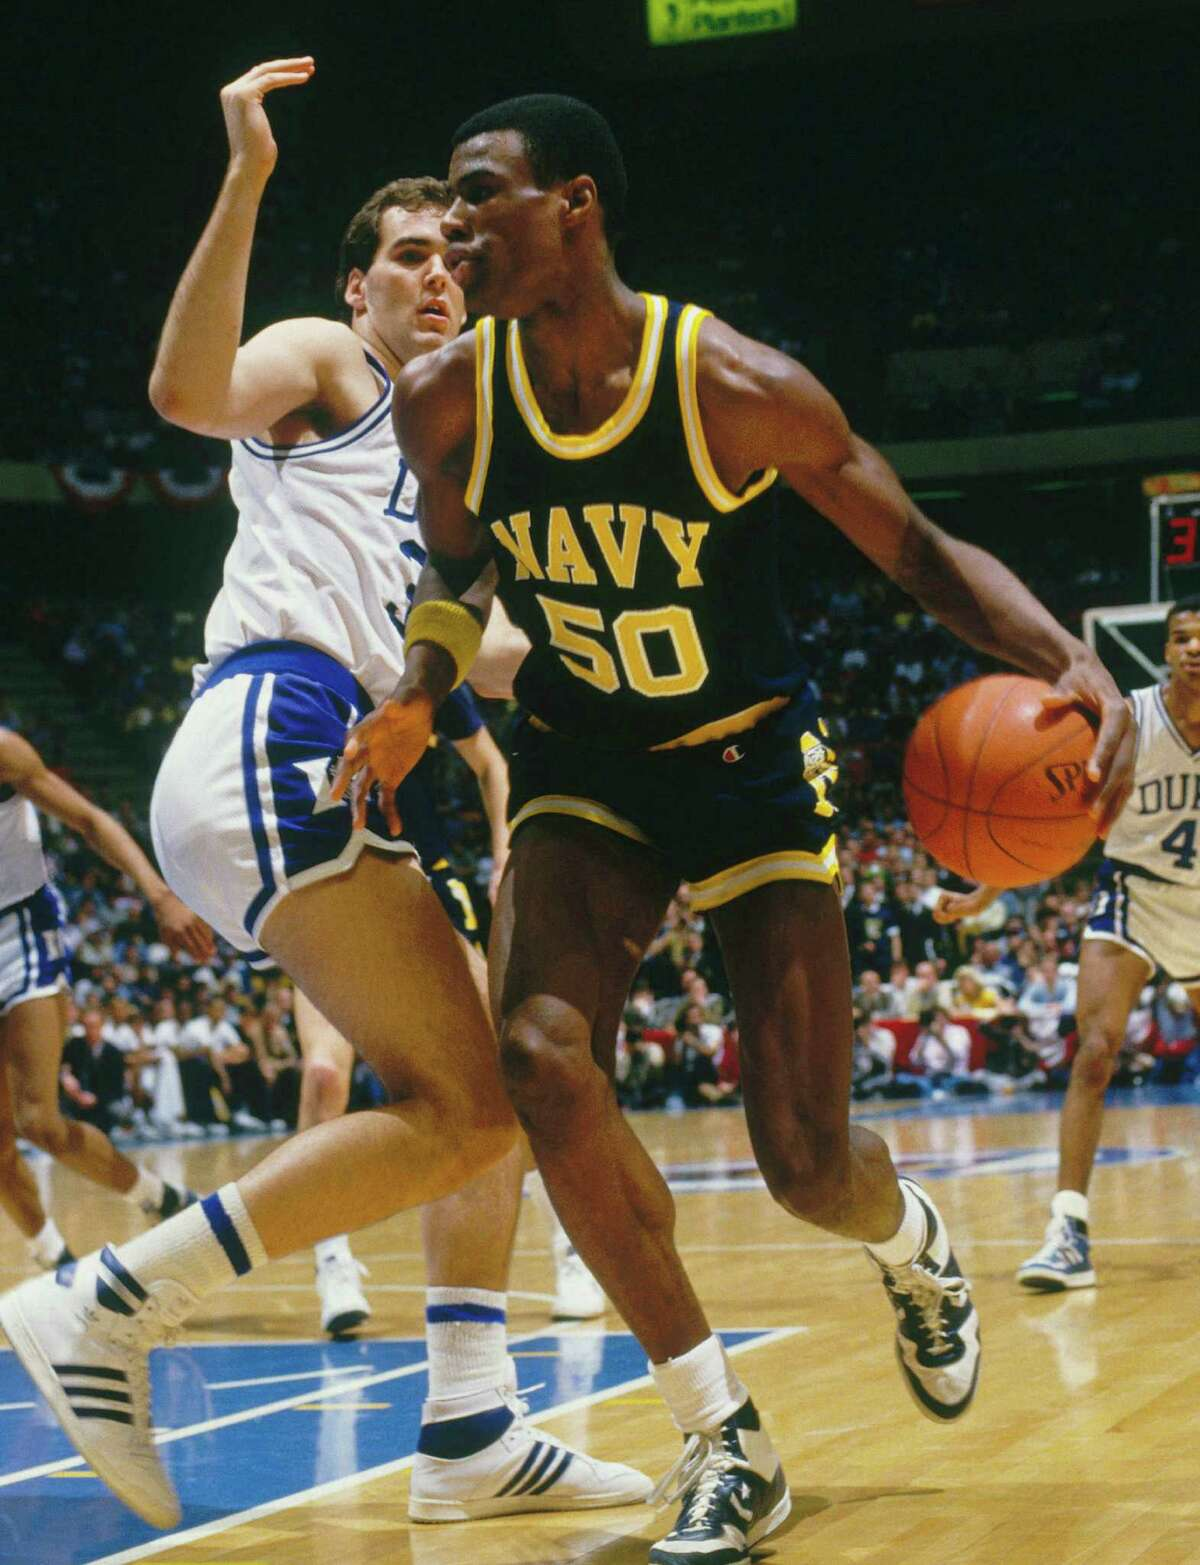 Grew 7 inches in college: The 7-foot-1, left-hander led the nation in rebounding and blocked shots as a senior in 1987 and won both the Naismith and Wooden awards as player of the year.